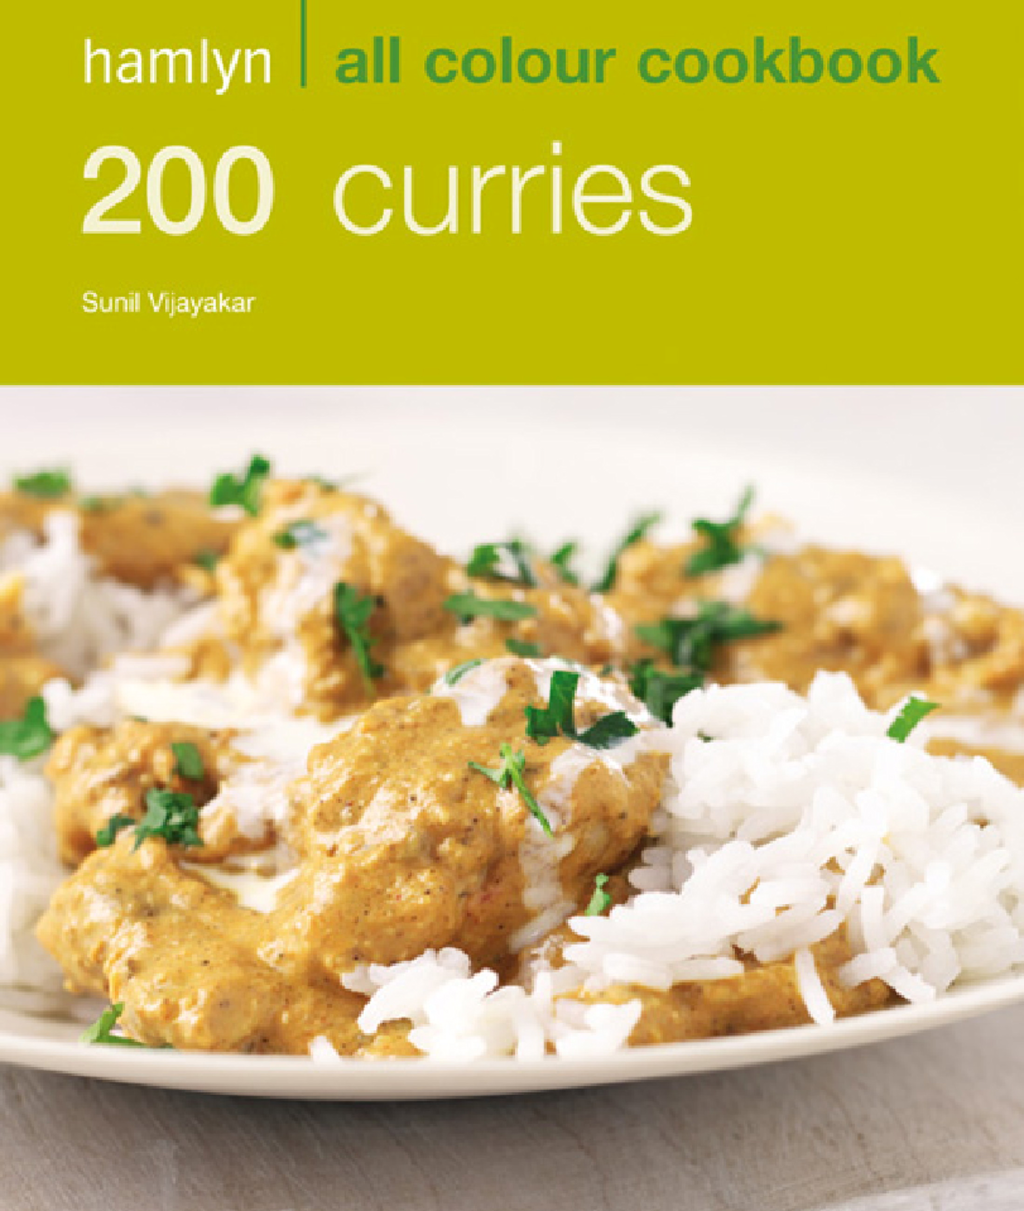 200 Curries Hamlyn All Colour Cookbook